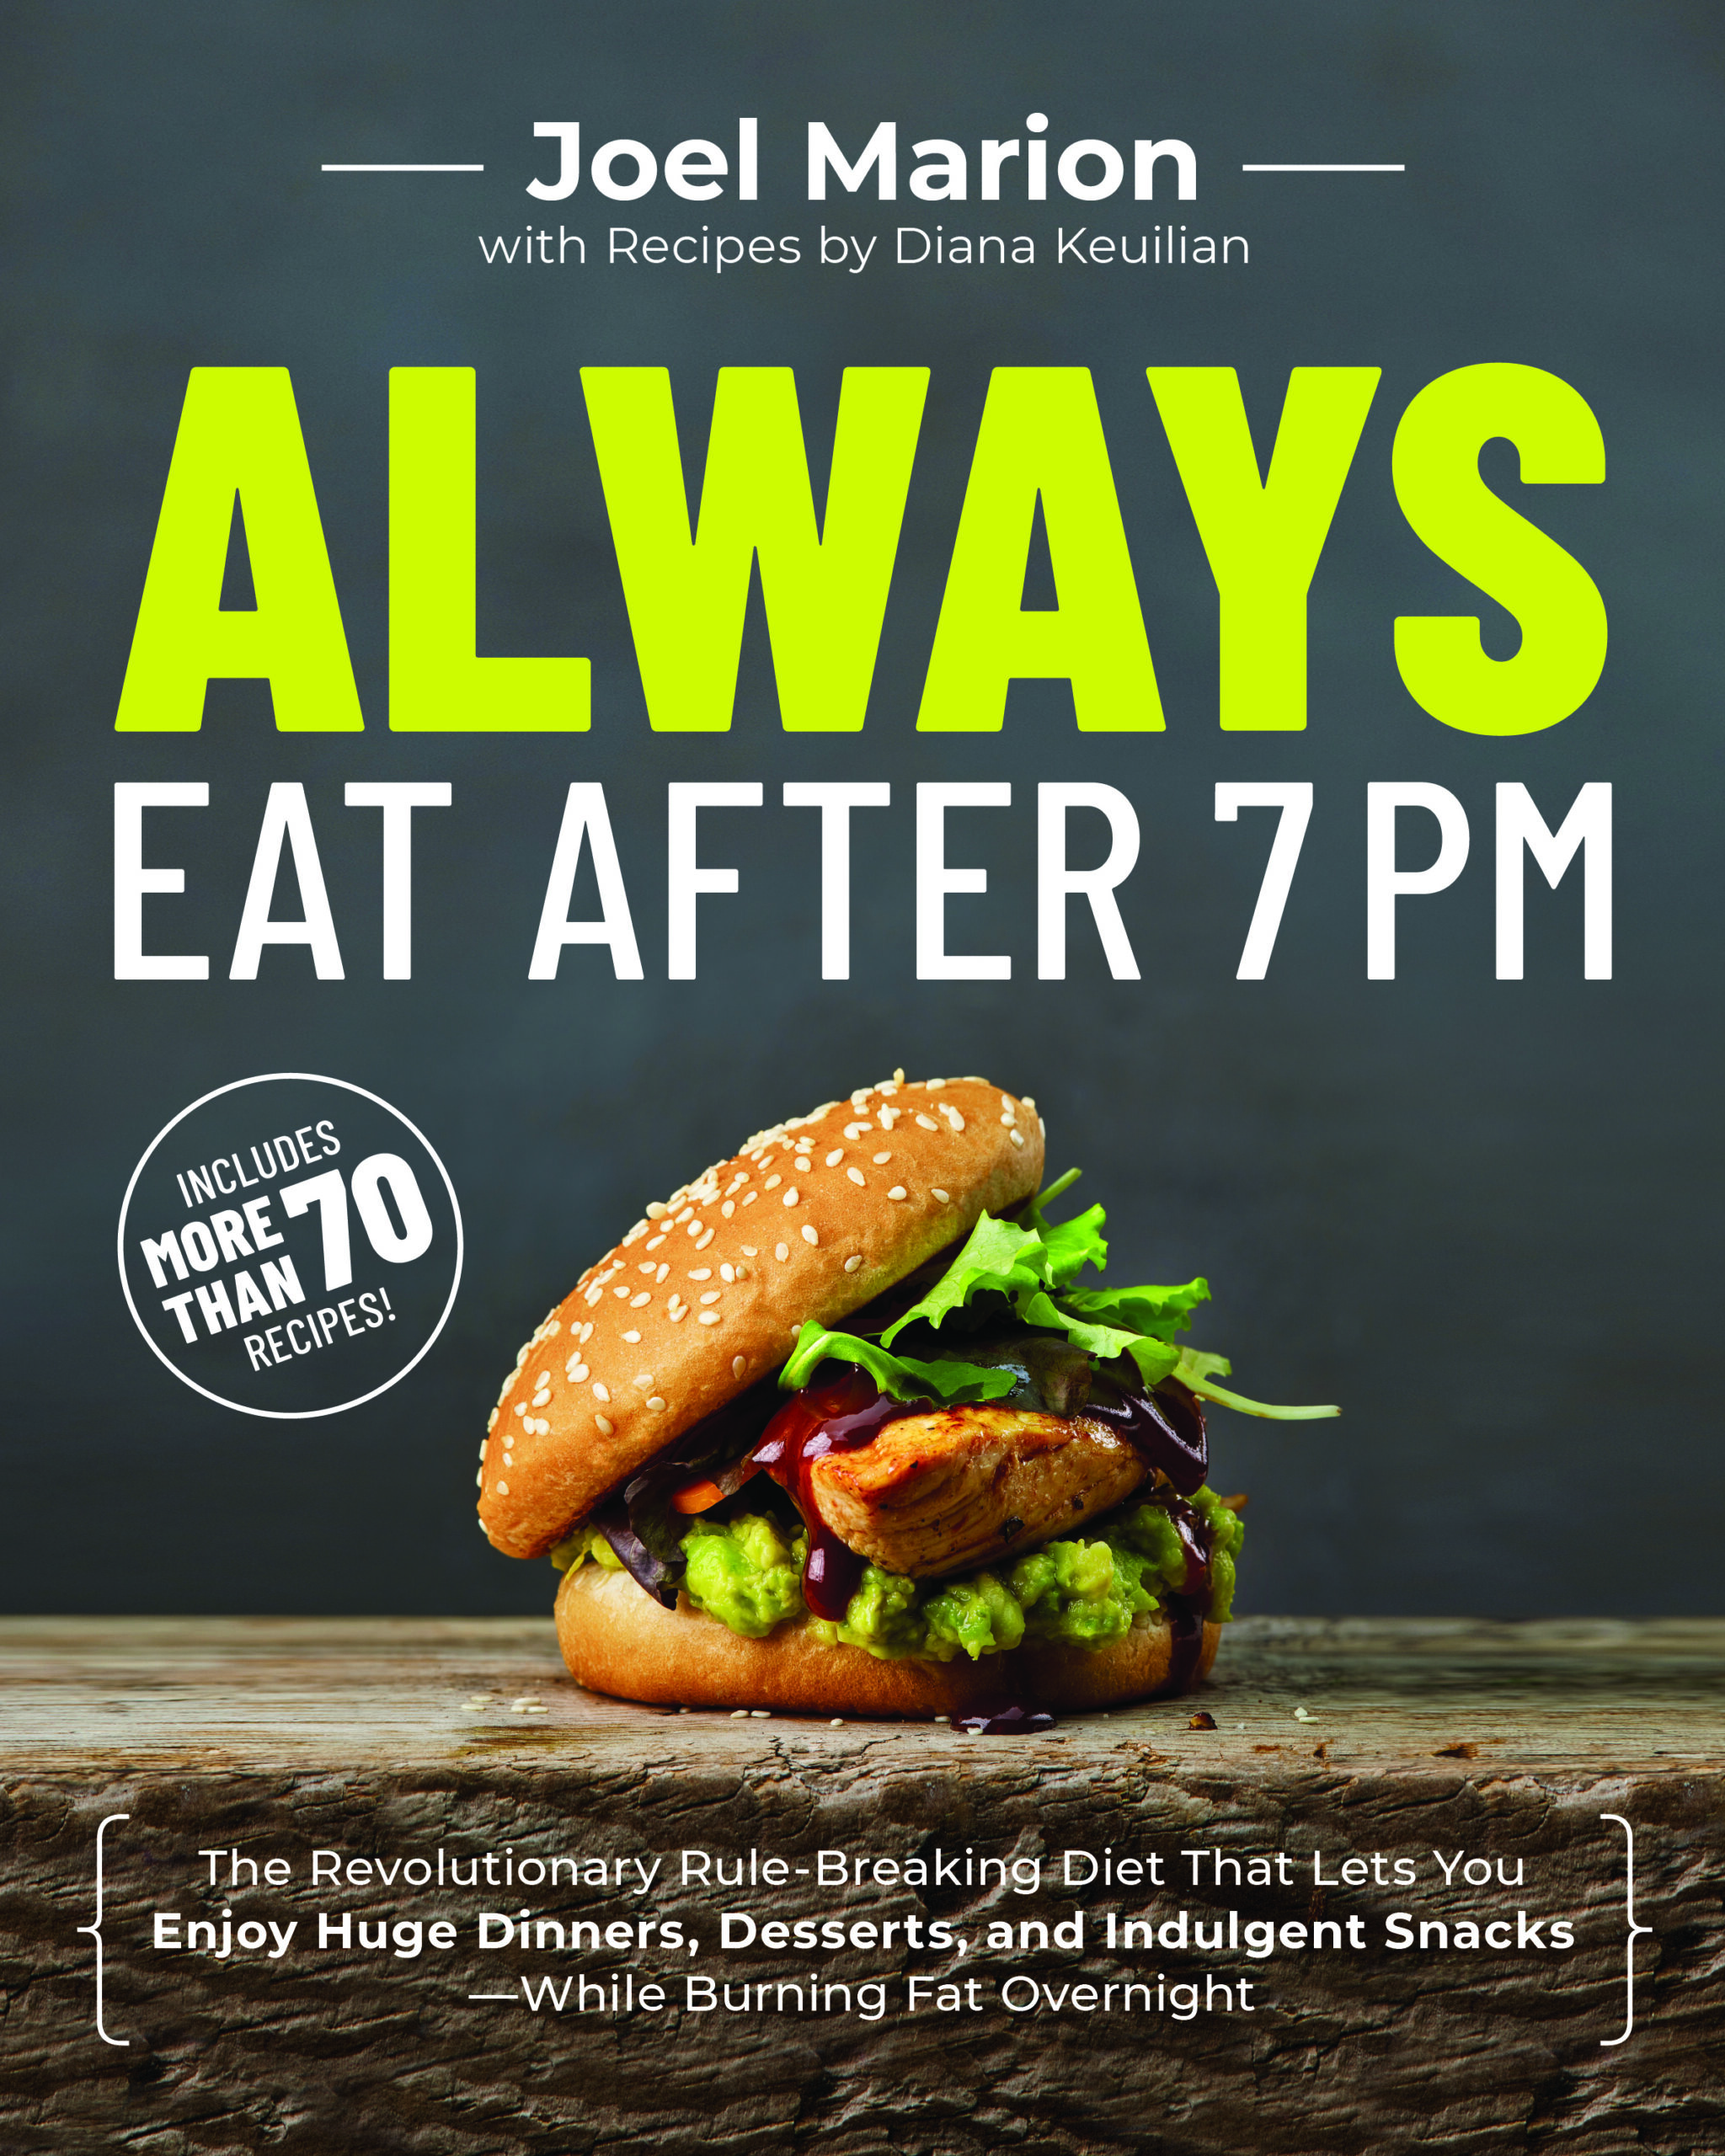 always eat after 7 pm book challenge, book challenge, joel marion, diet plans, food plans, diet programs, food myths